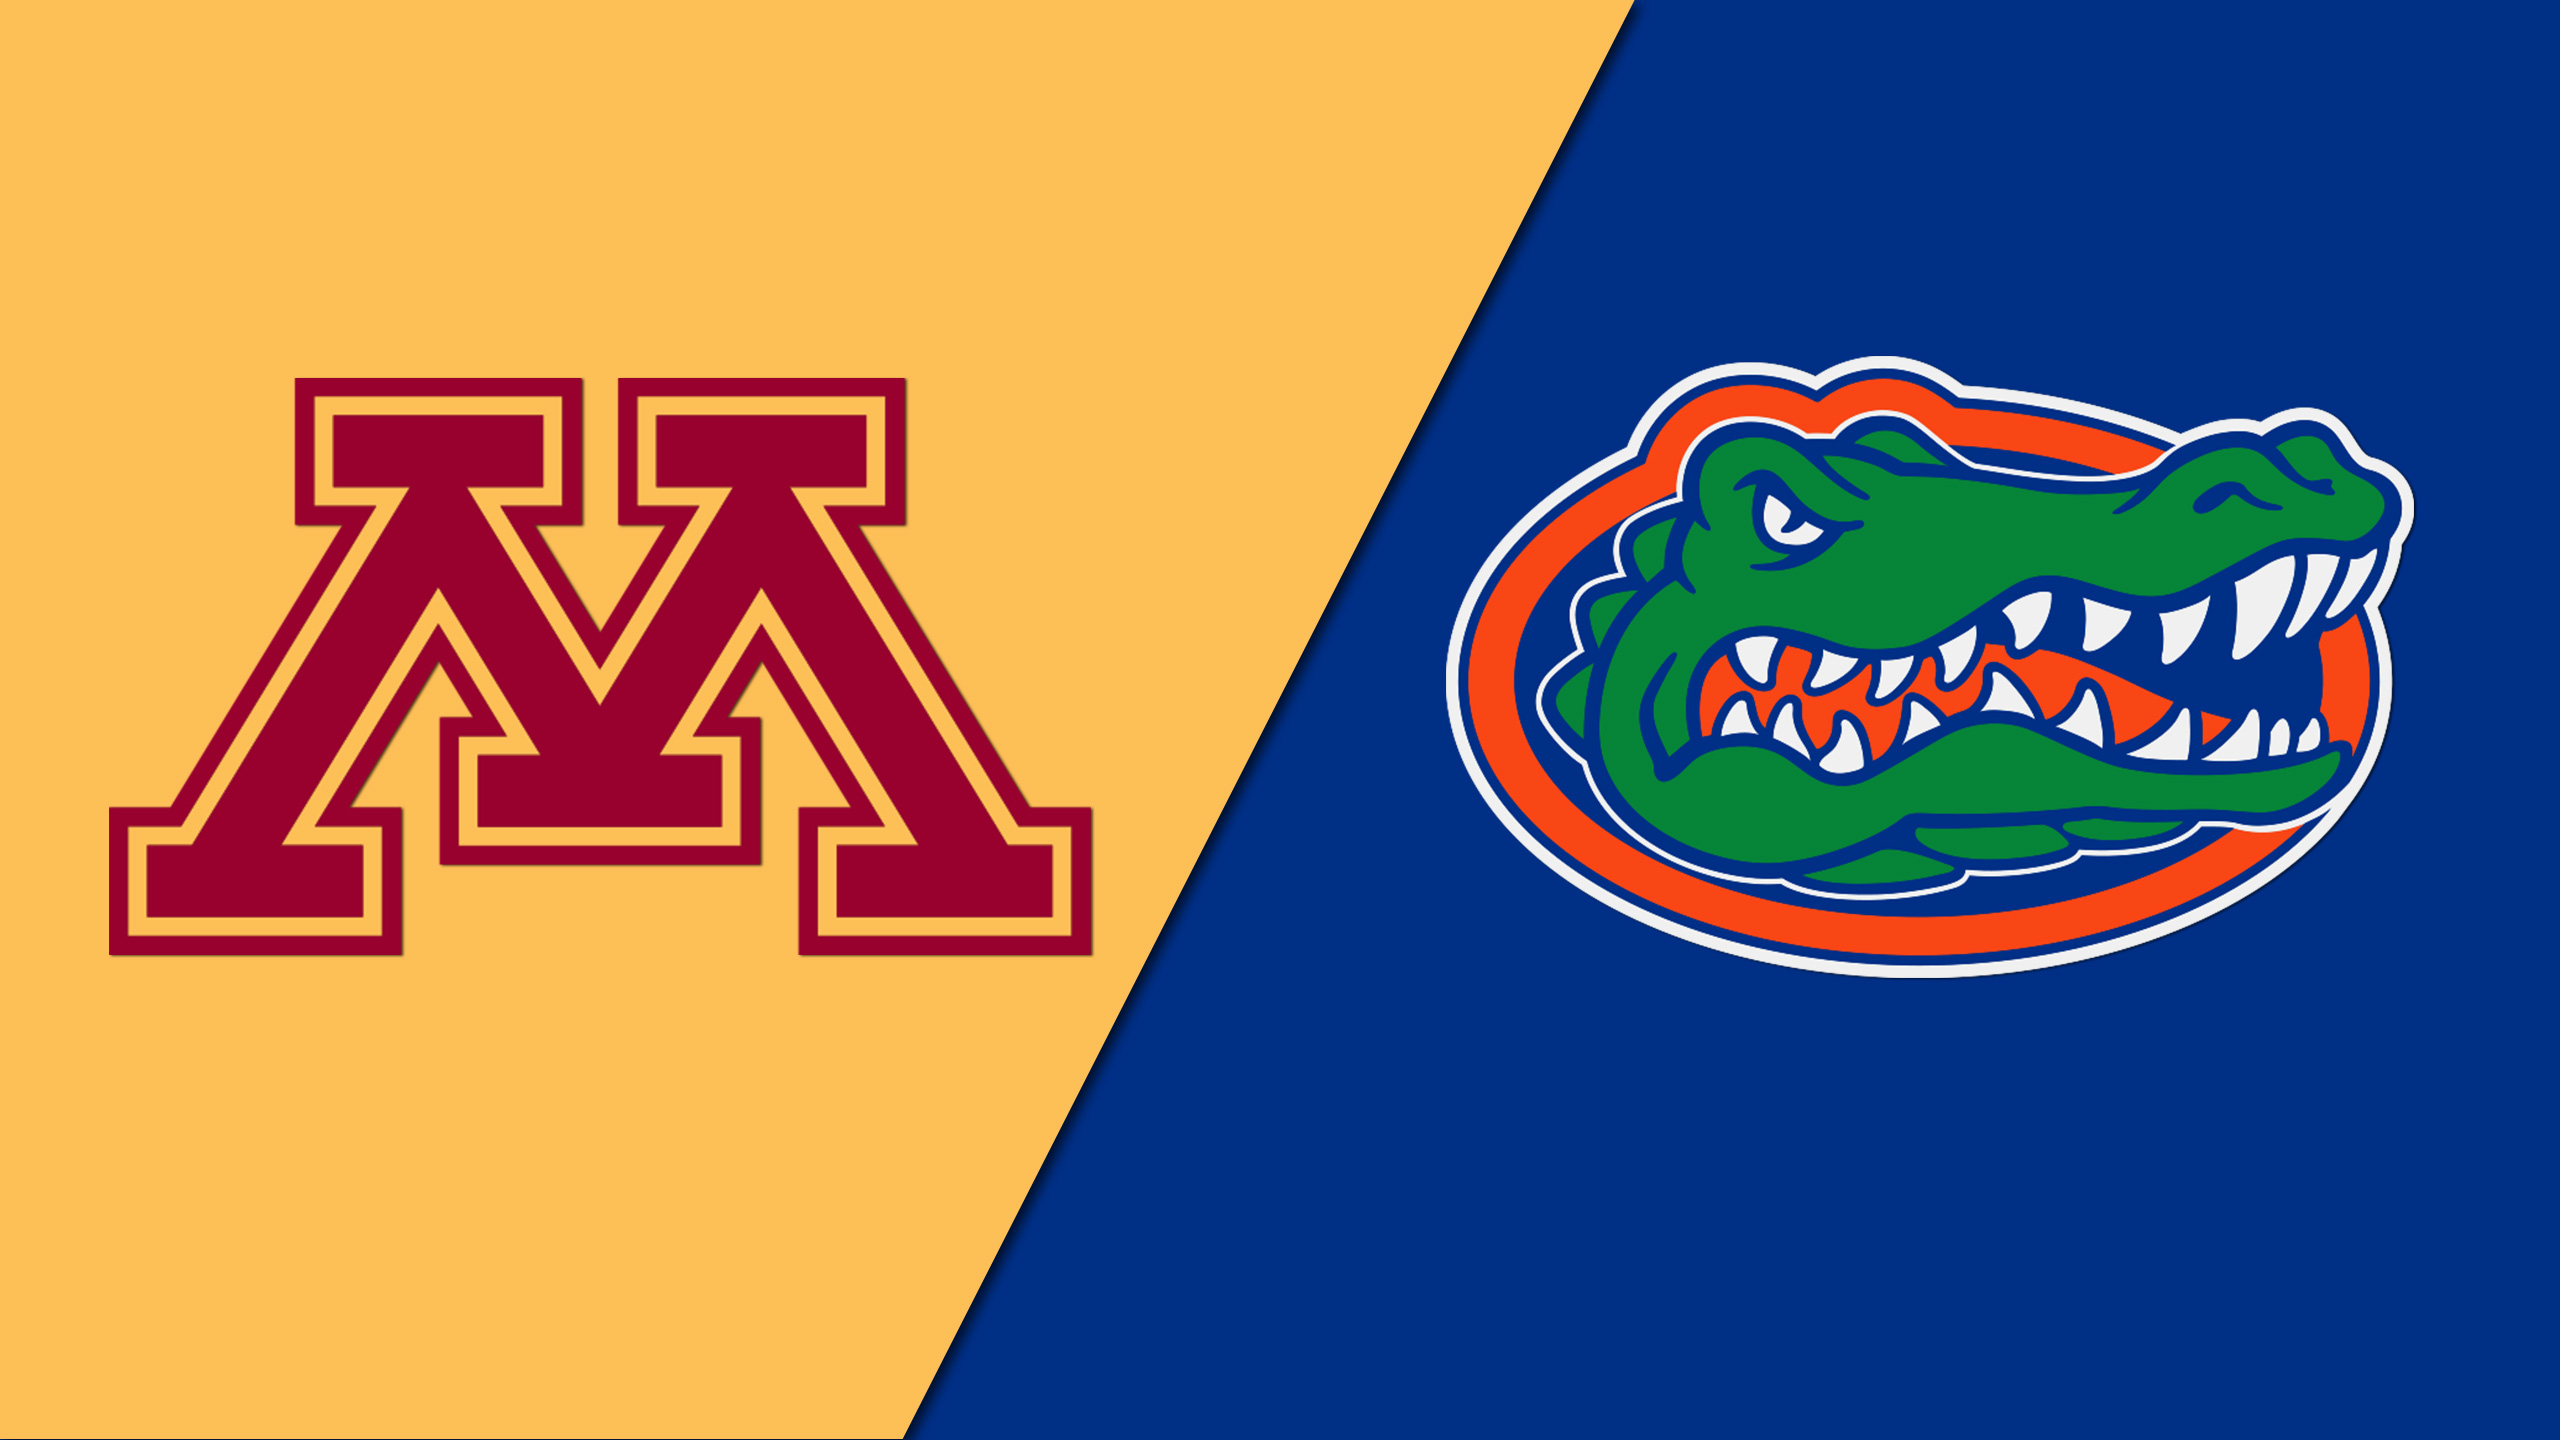 #19 Minnesota vs. #7 Florida (Softball)